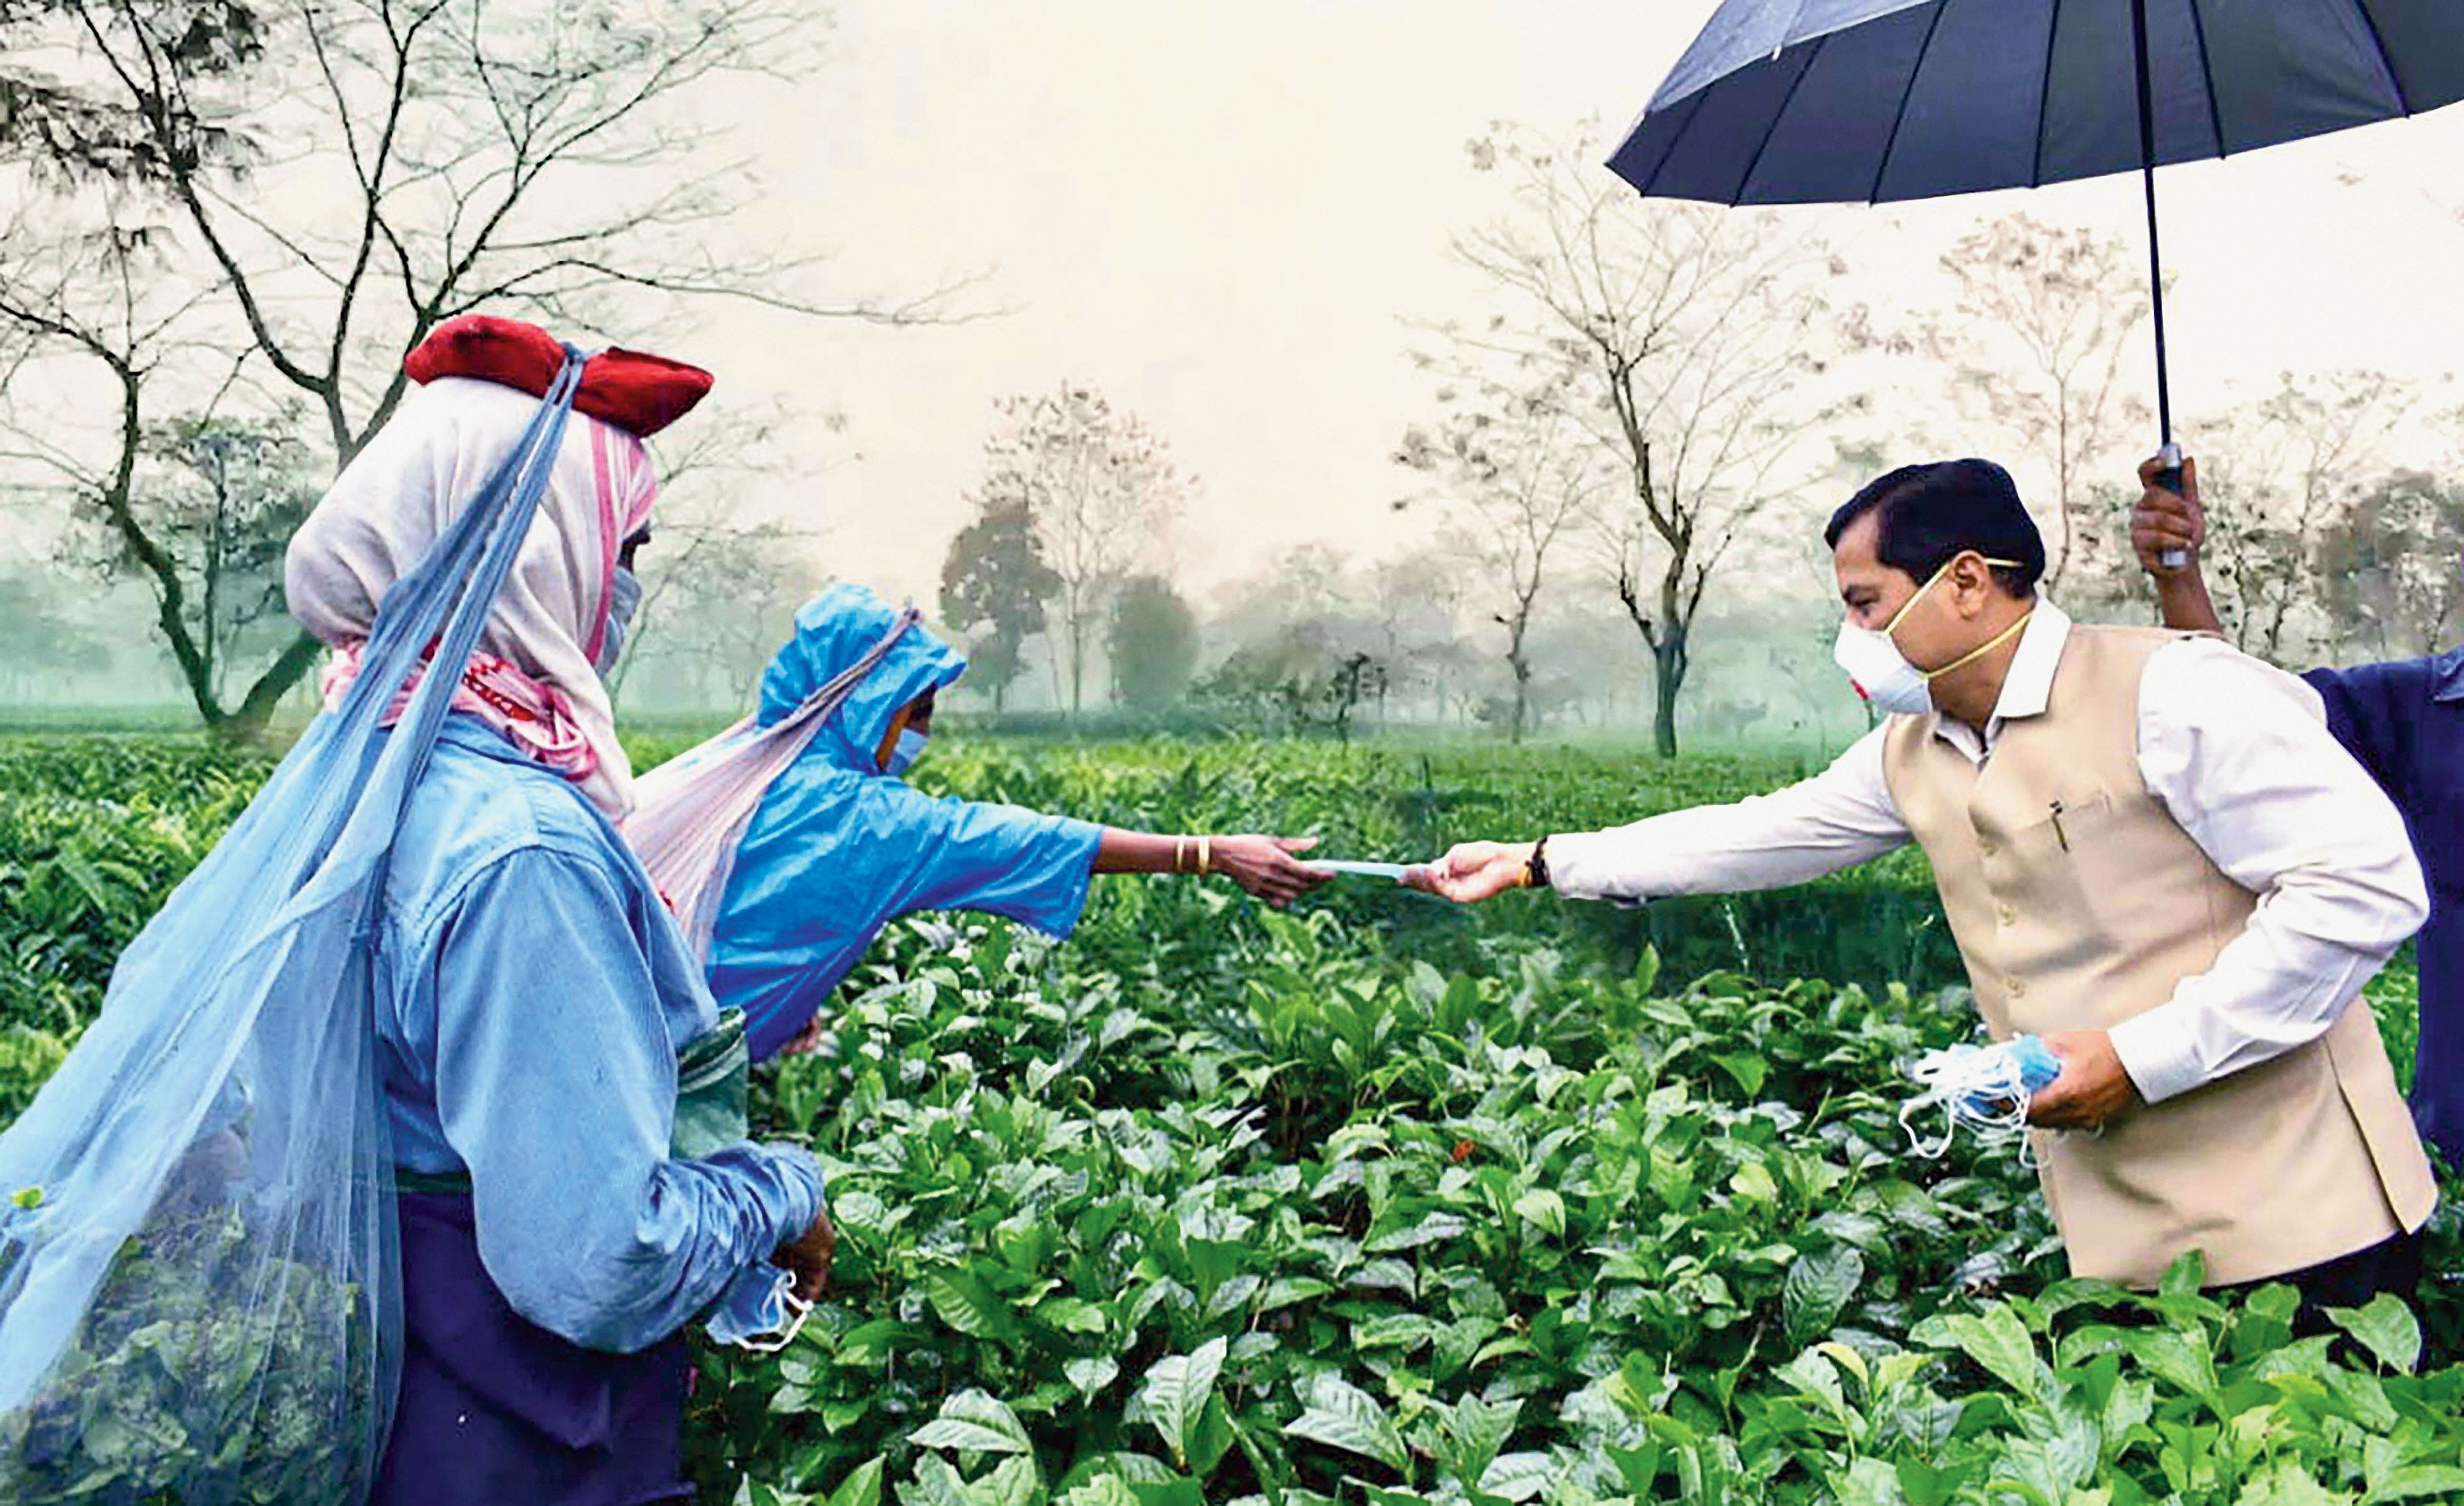 Assam chief minister Sarbananda Sonowal distributes face masks among workers at Bokpara tea estate in Dibrugarh district on Friday.